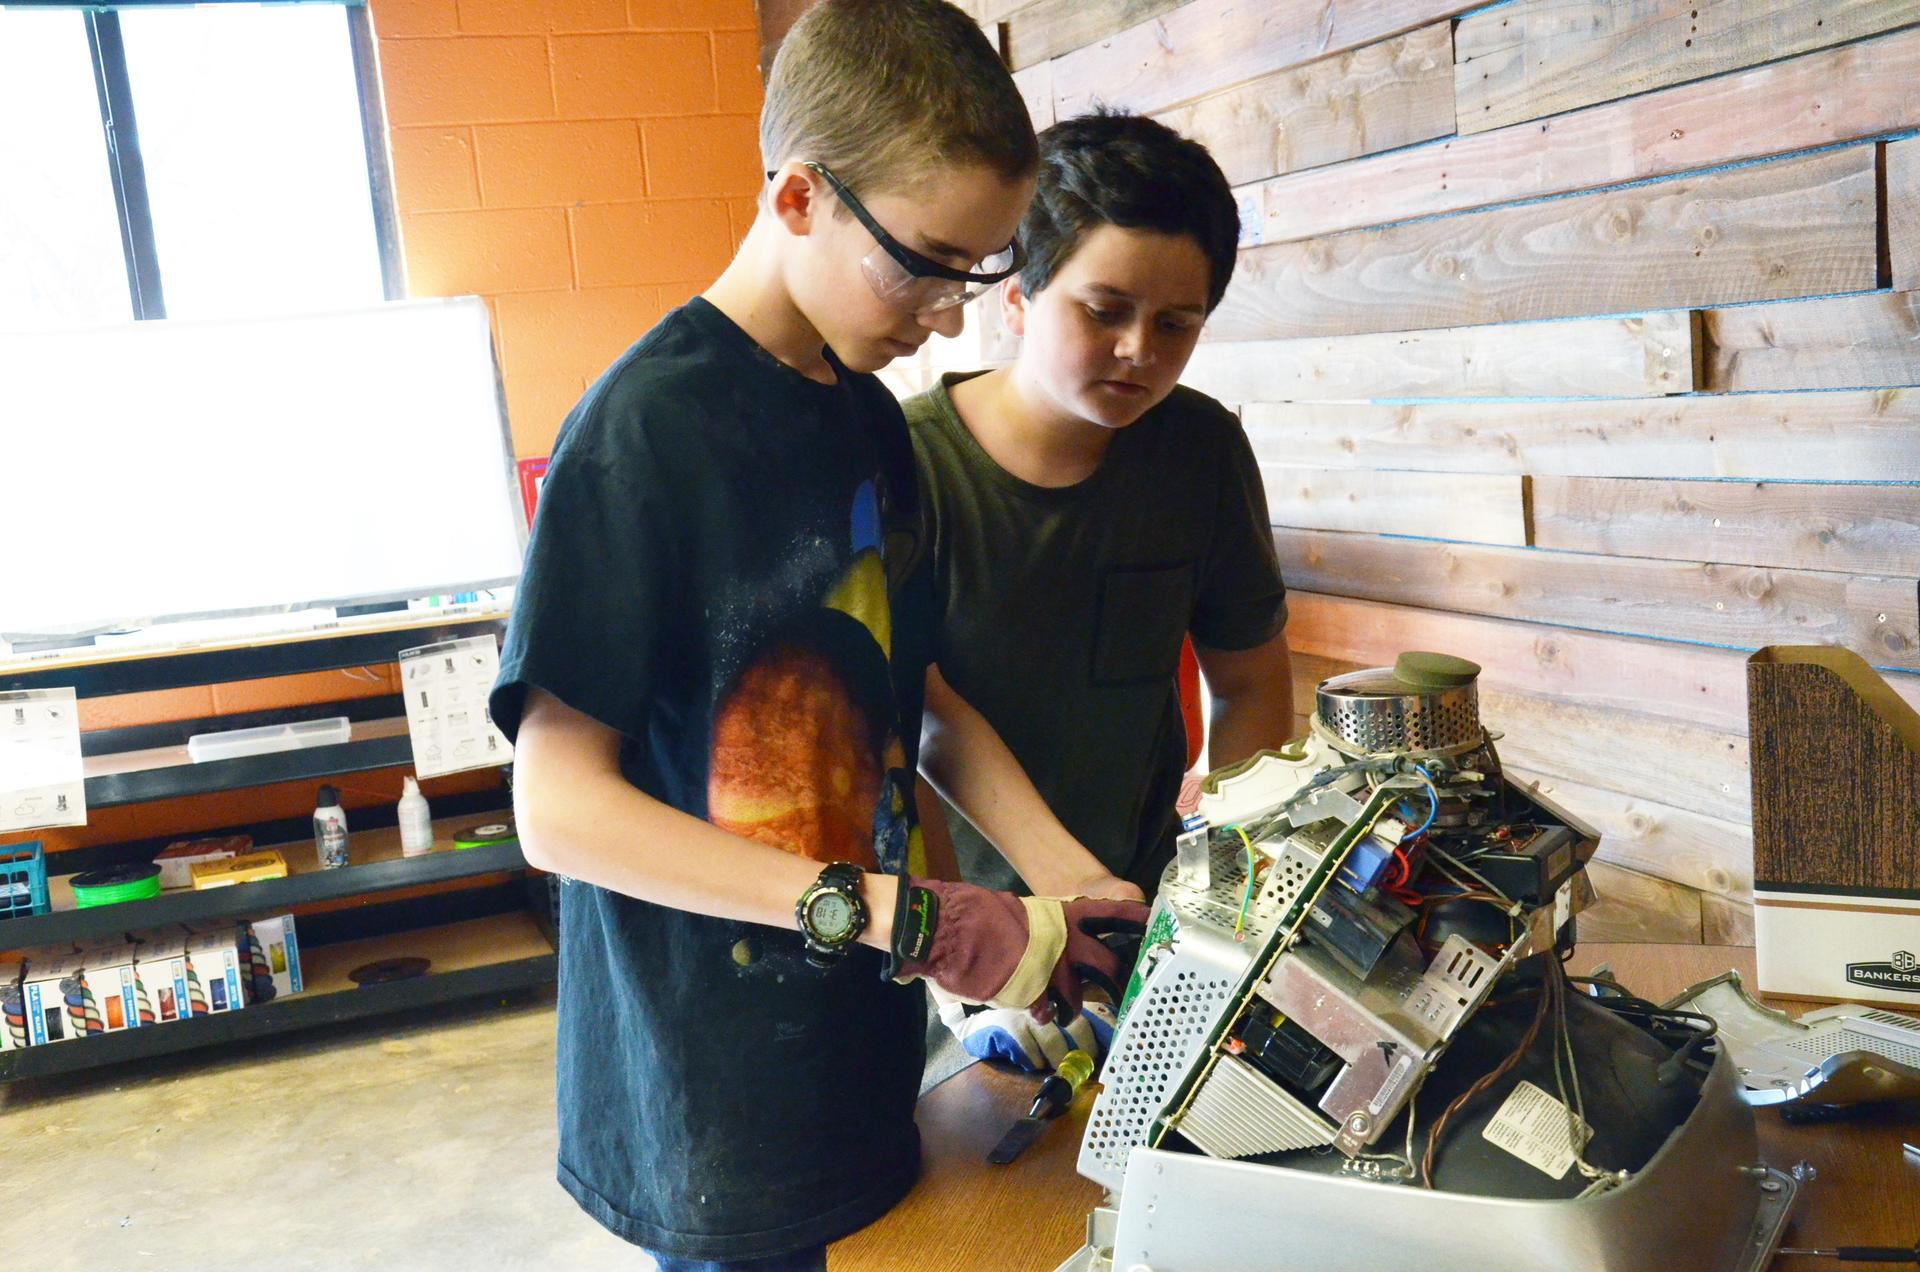 Two middle school students take apart and analyze equipment